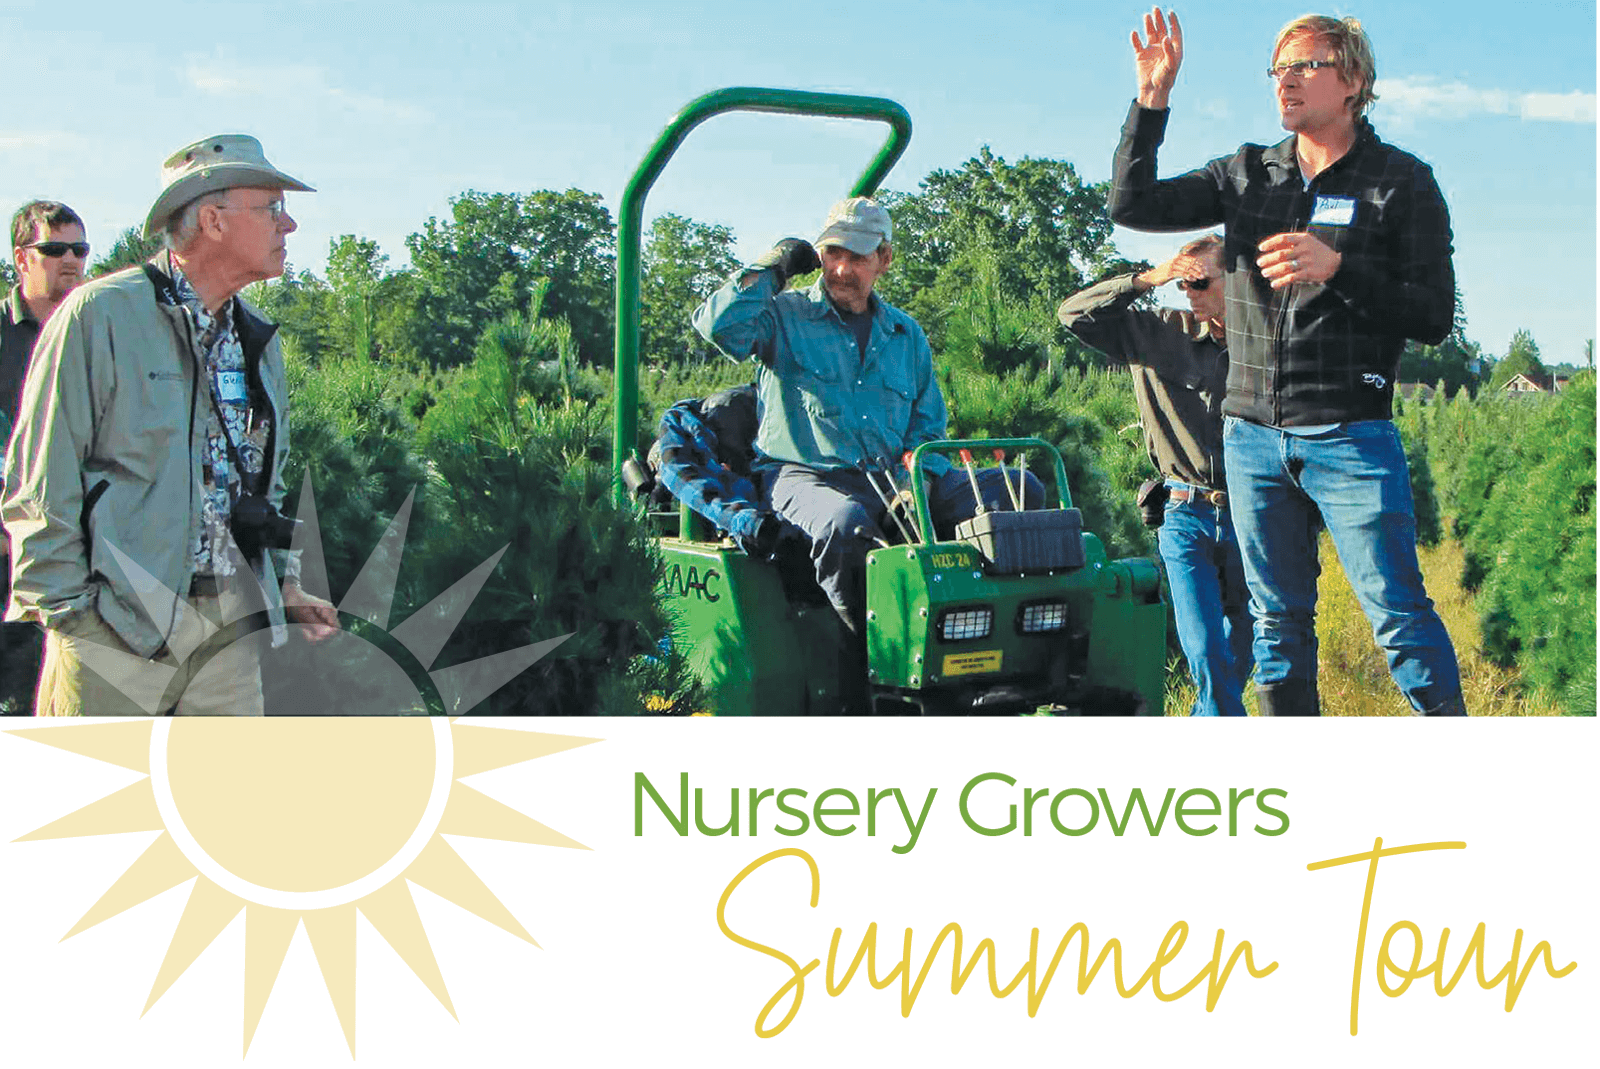 Nursery Growers Summer Tour 2019